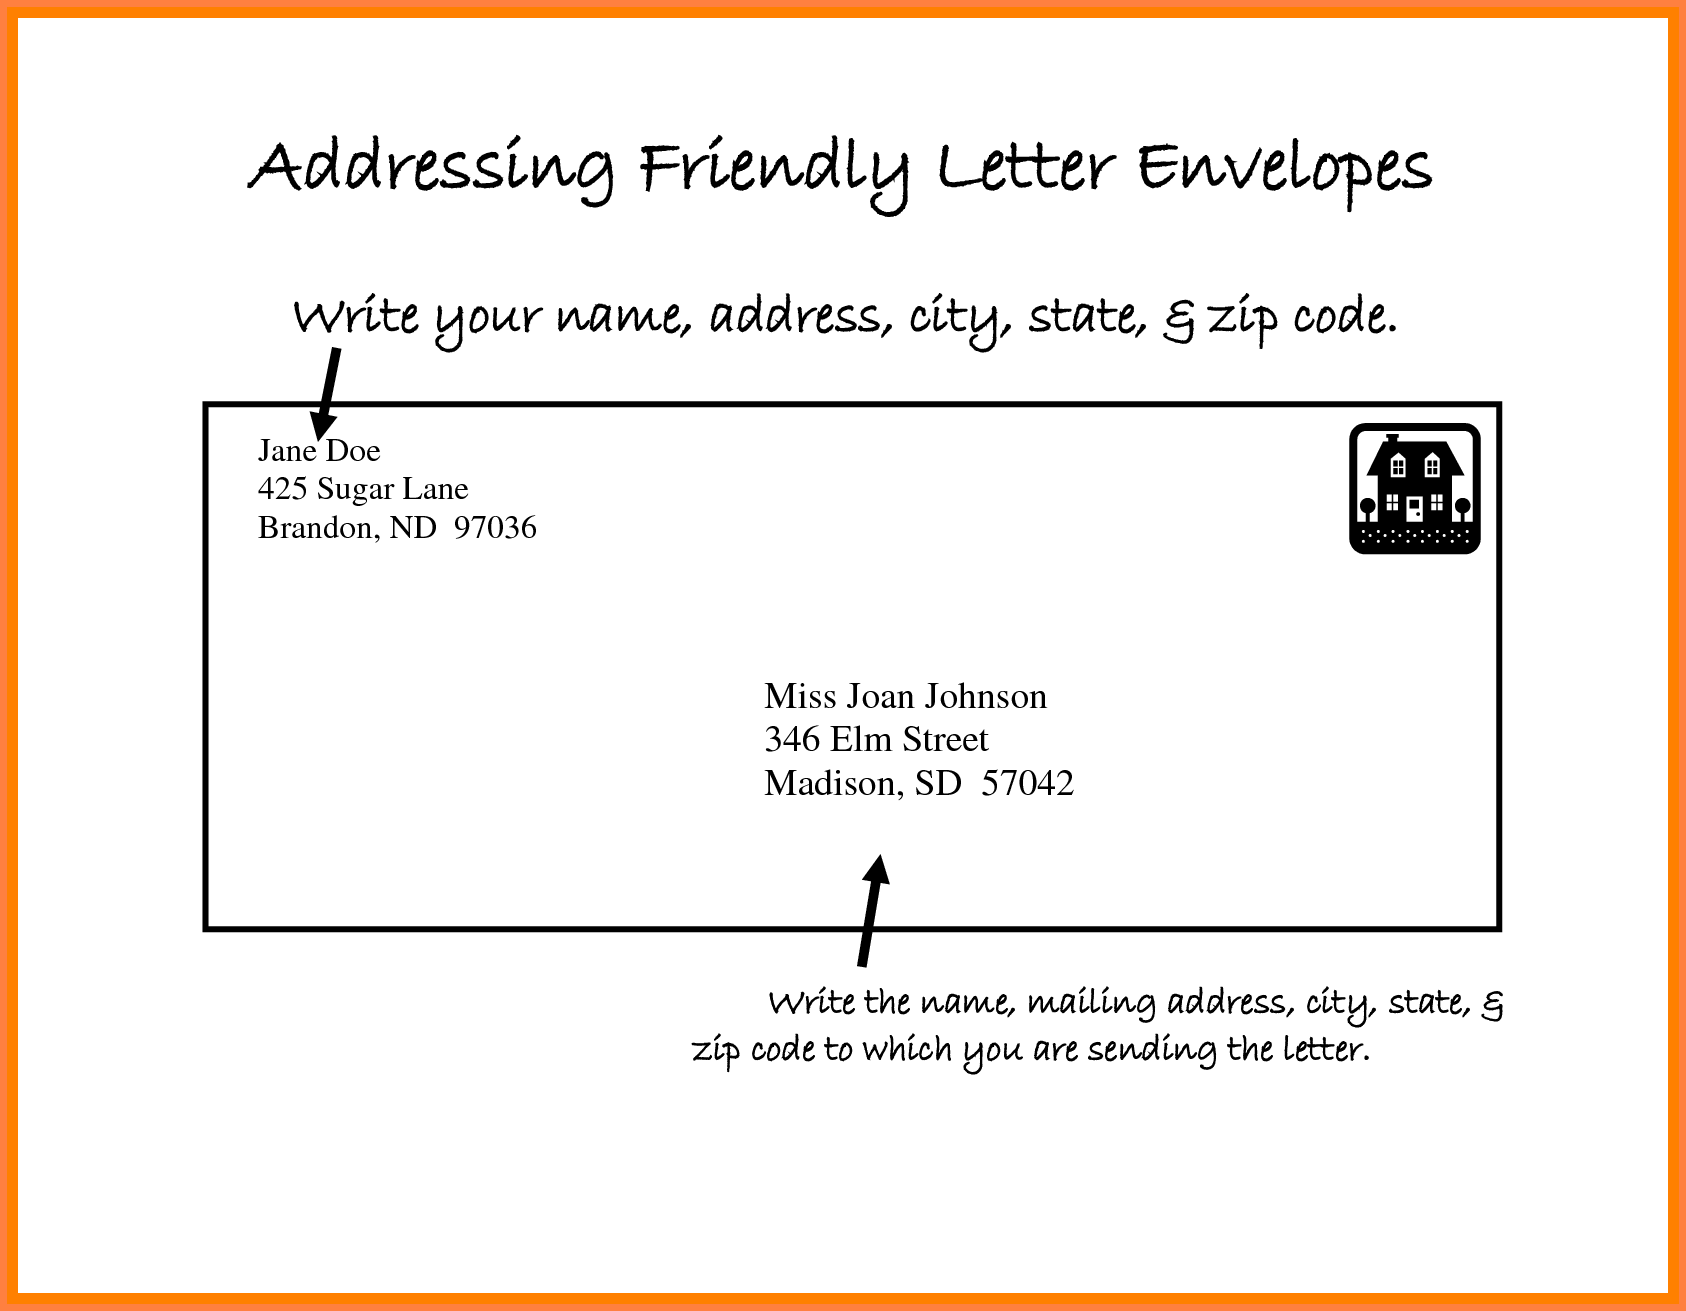 How To Write Address On Courier Envelope In India Best Letter Addressing Envelope Lettering Addressing Envelopes